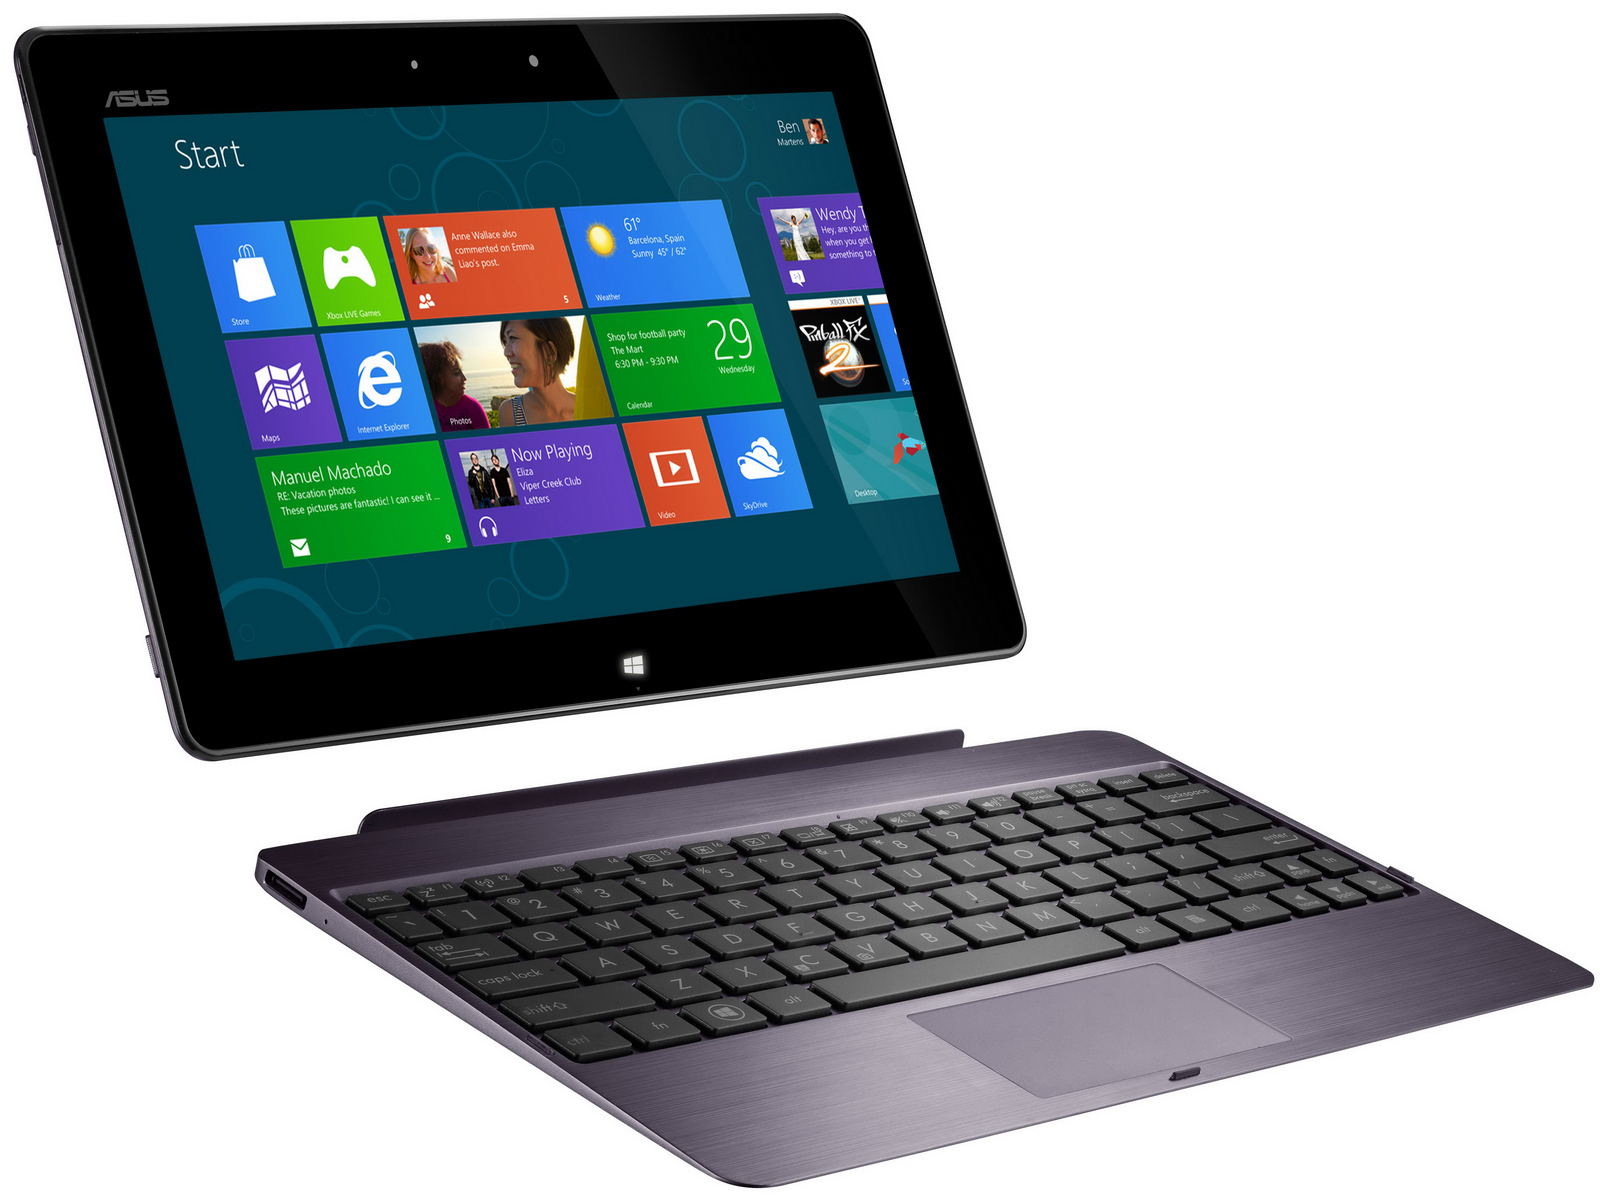 Computex 2012 | Windows-8-Tablets Asus 600 und Asus 810 im Detail